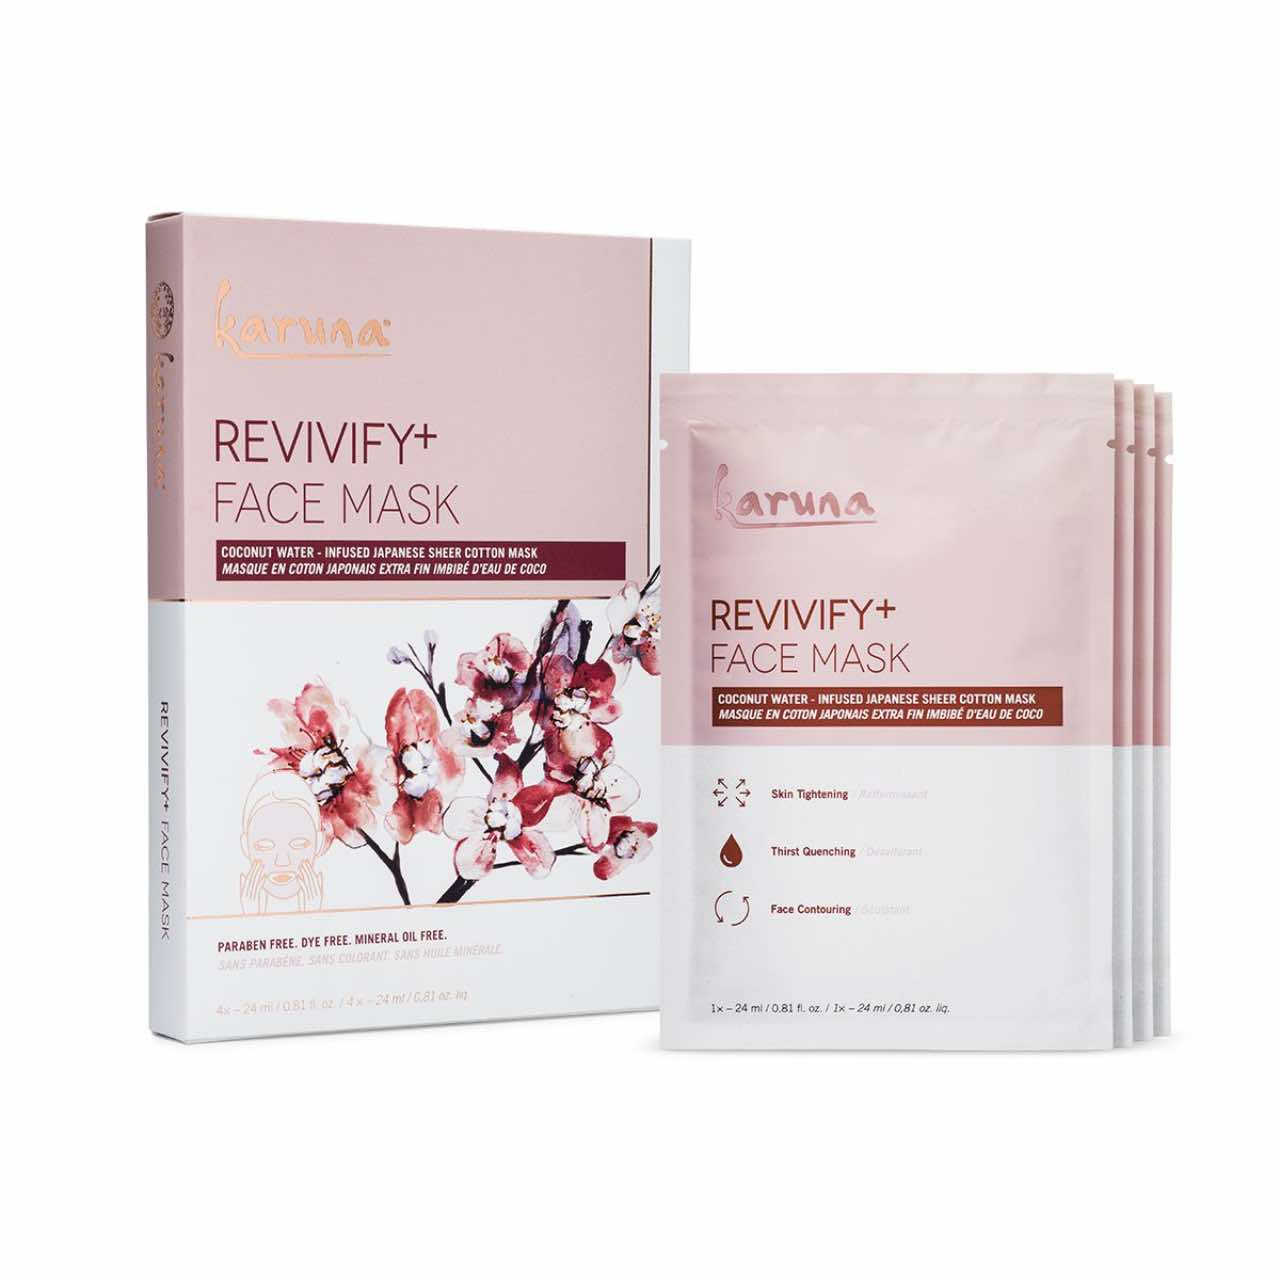 KARUNA Revivify+ Face Mask